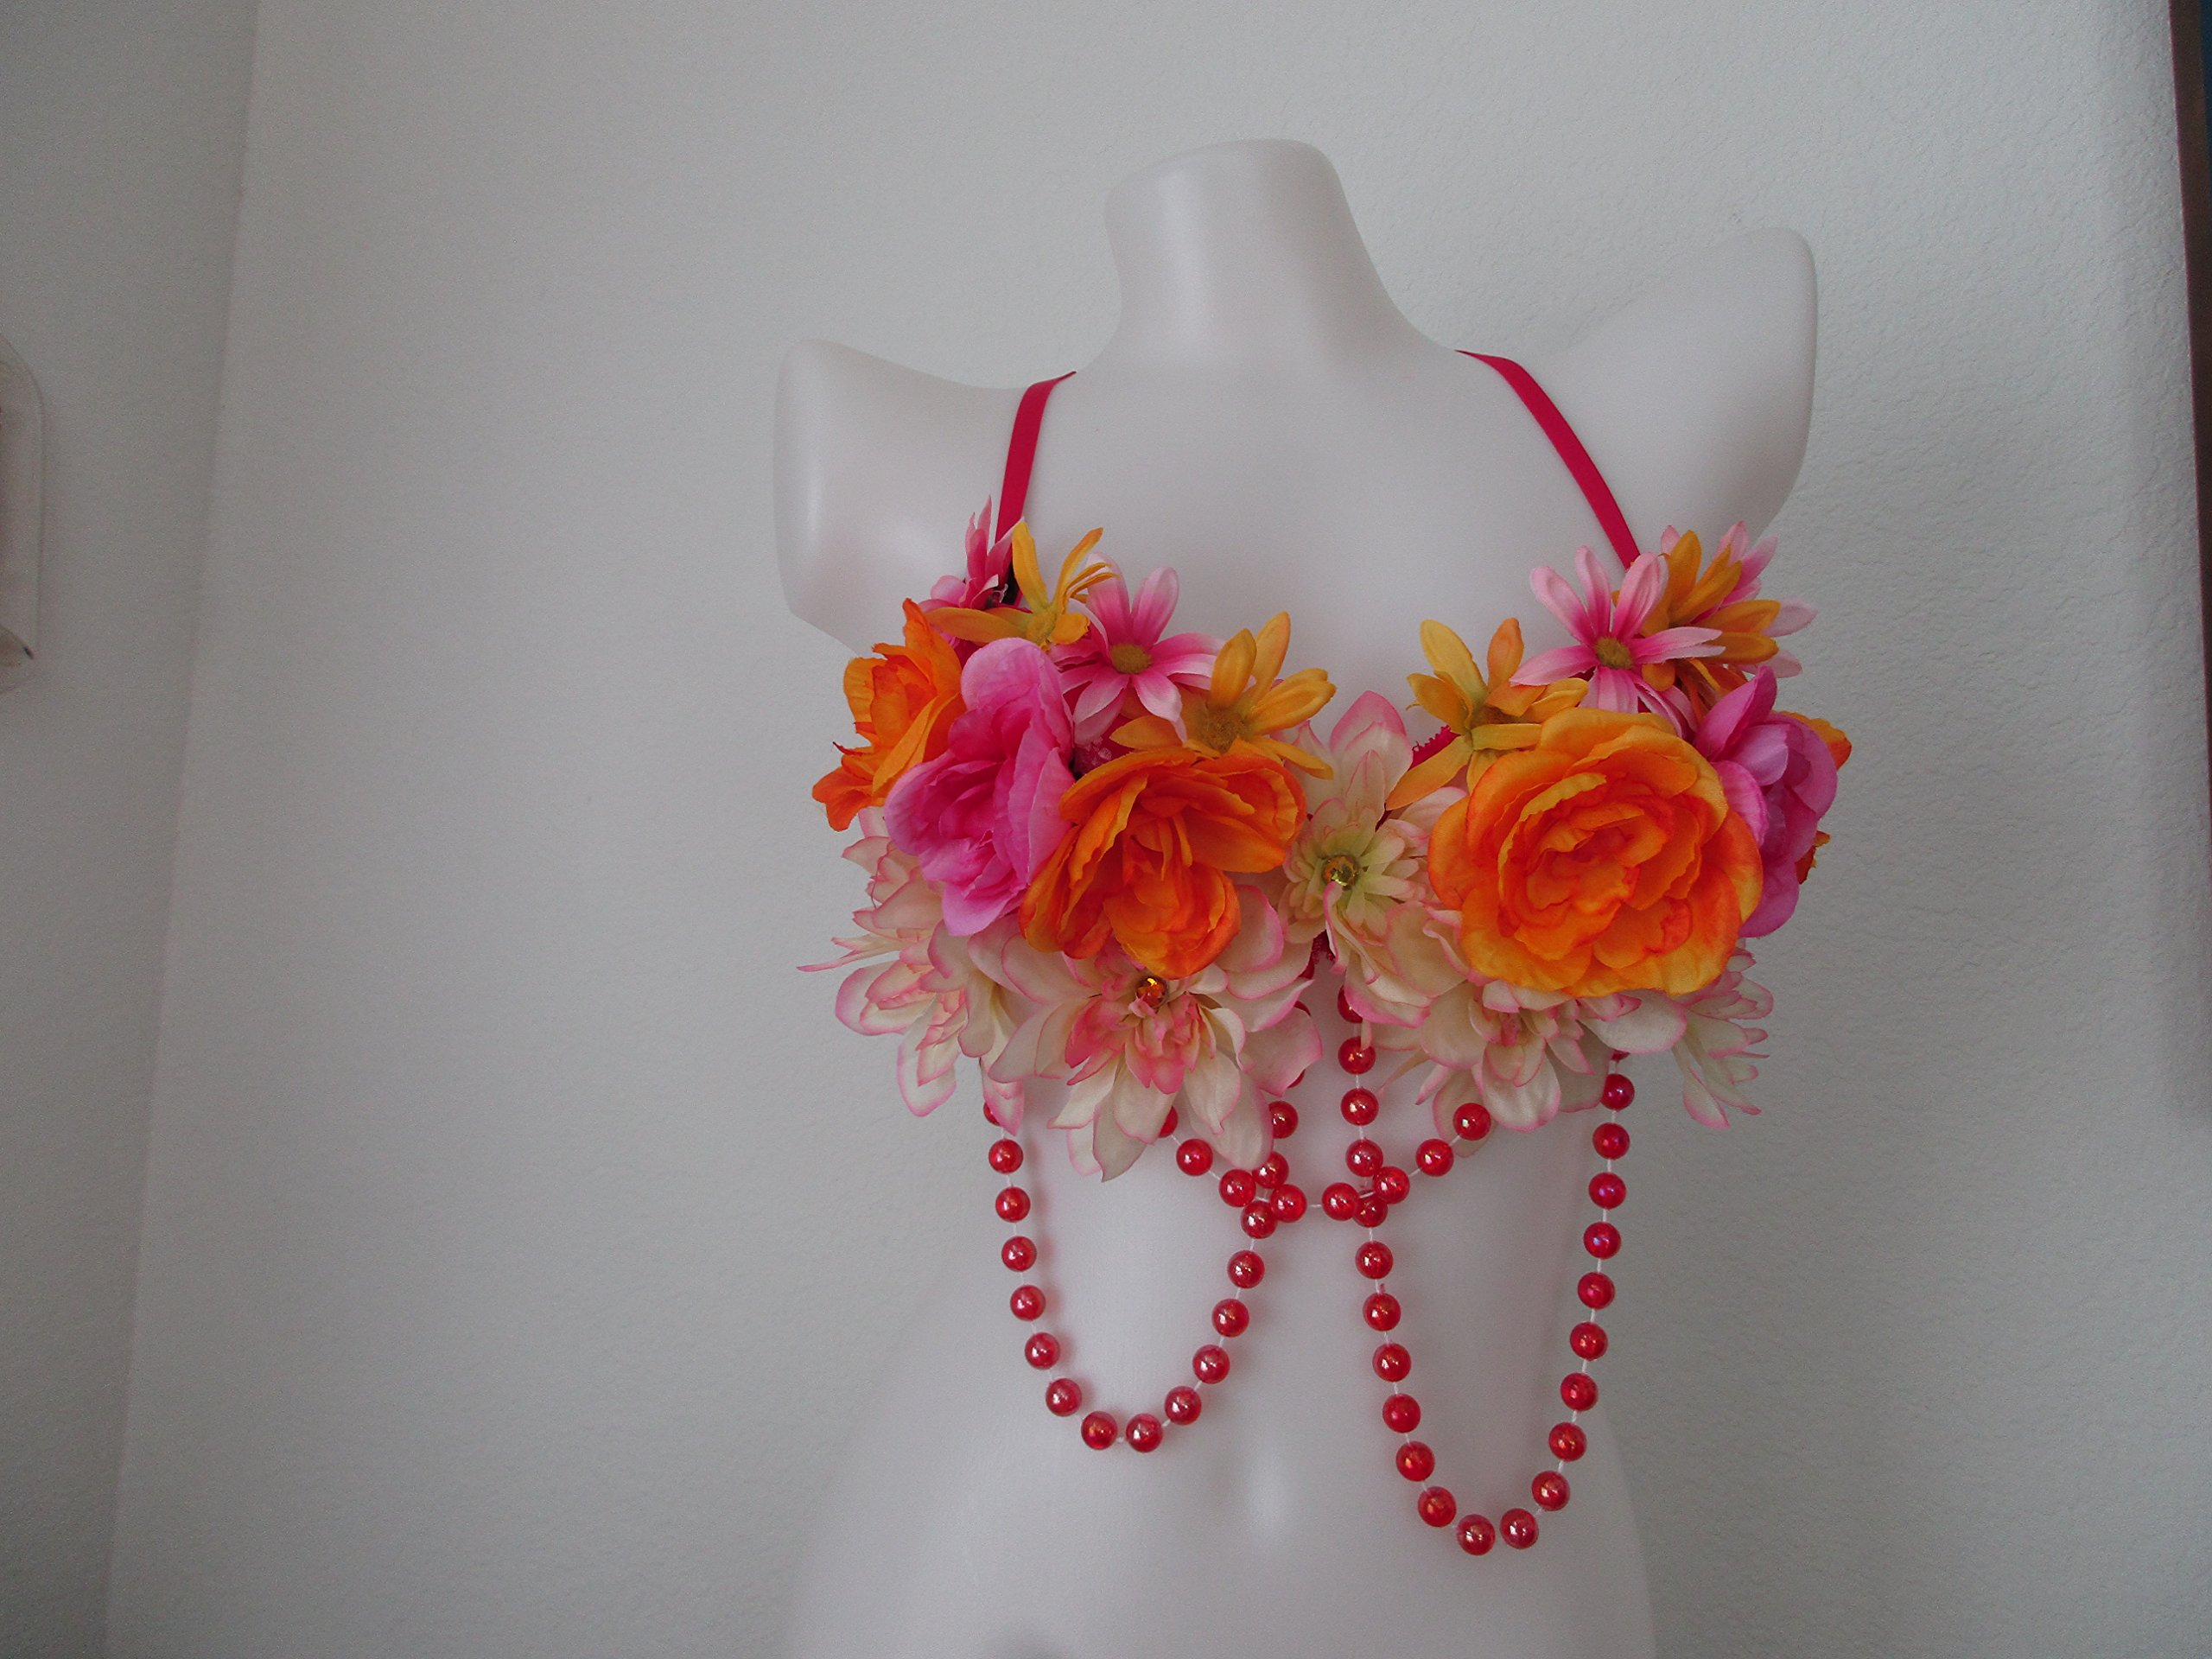 Pink Orange Rave Wear Bra 34A - Floral Embellishment - Nice for EDC / Coachell